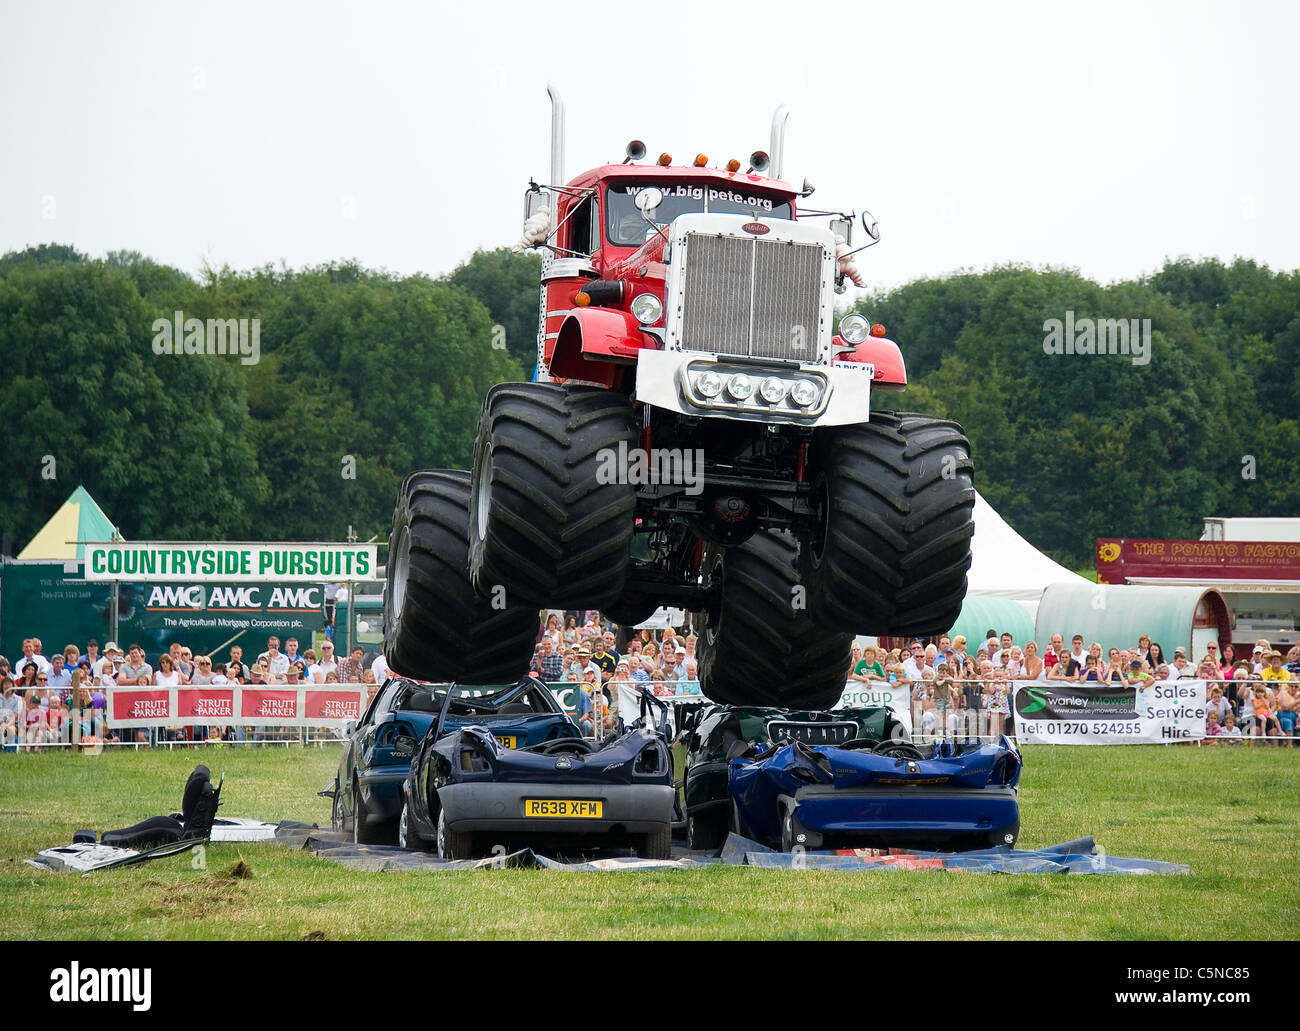 Monster Truck Crushing Cars Nantwich Show Uk Stock Photo